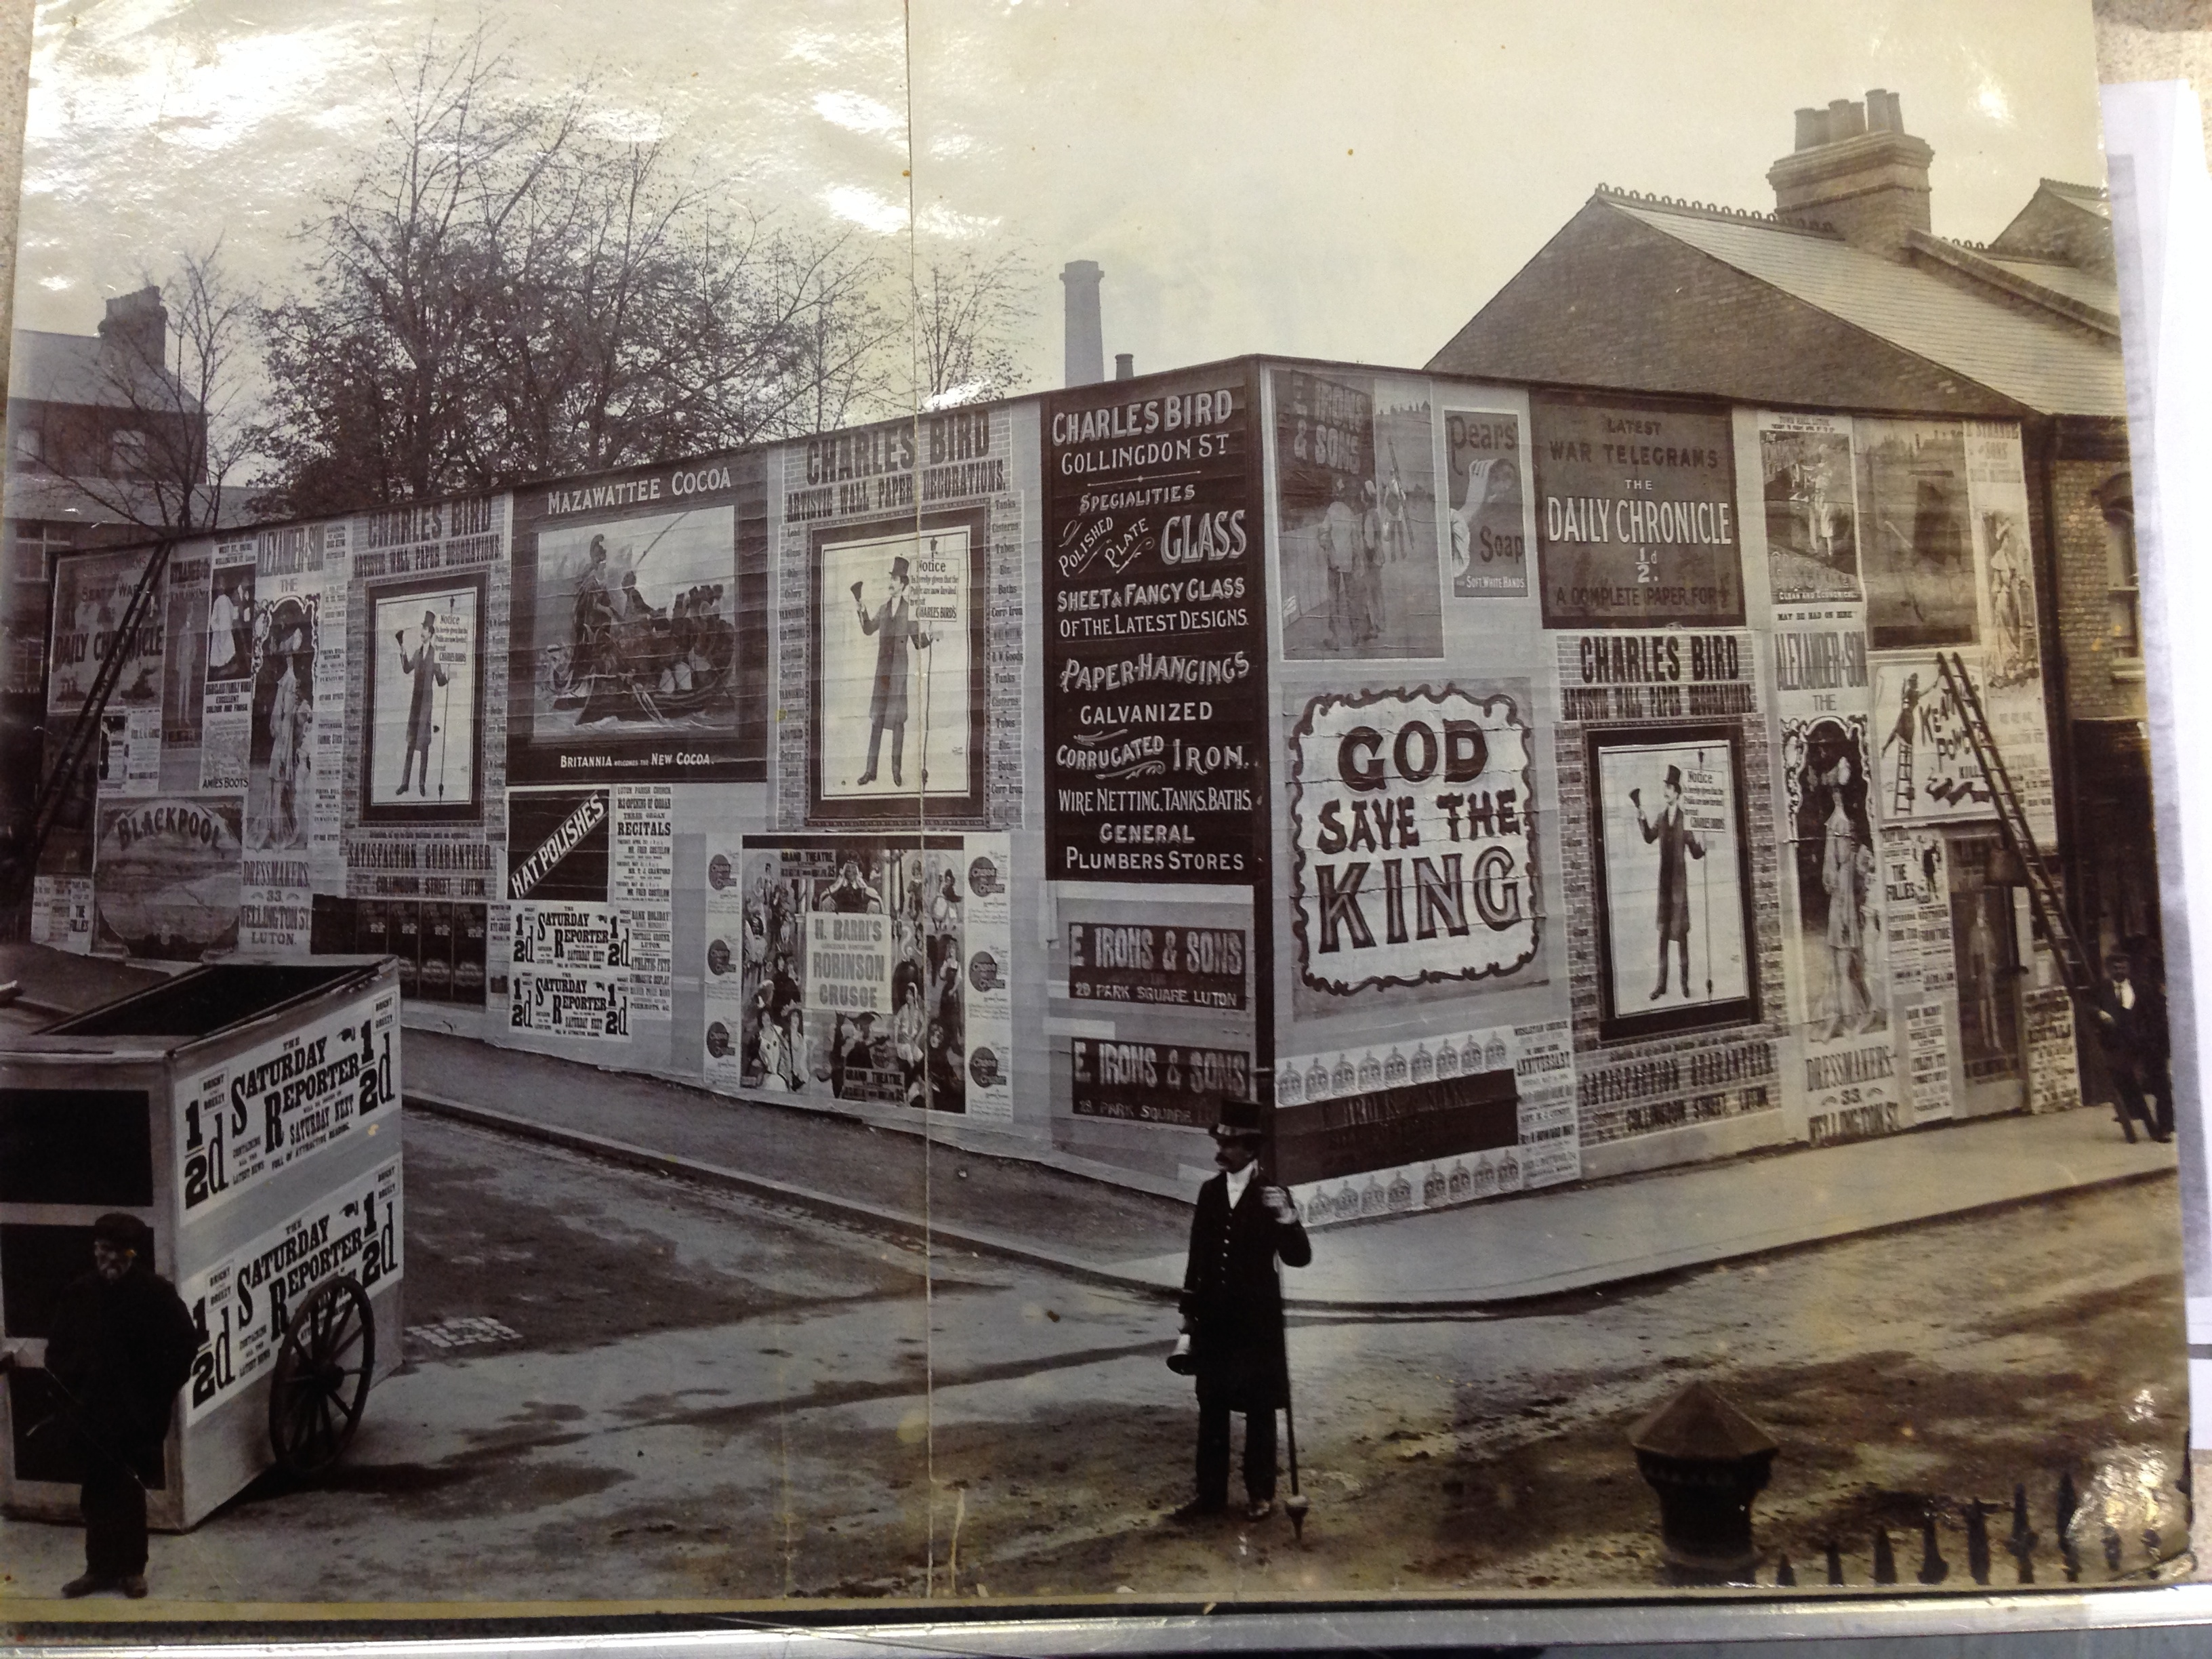 Charles Irons, Town Crier, Billboards and adverts on a cart.